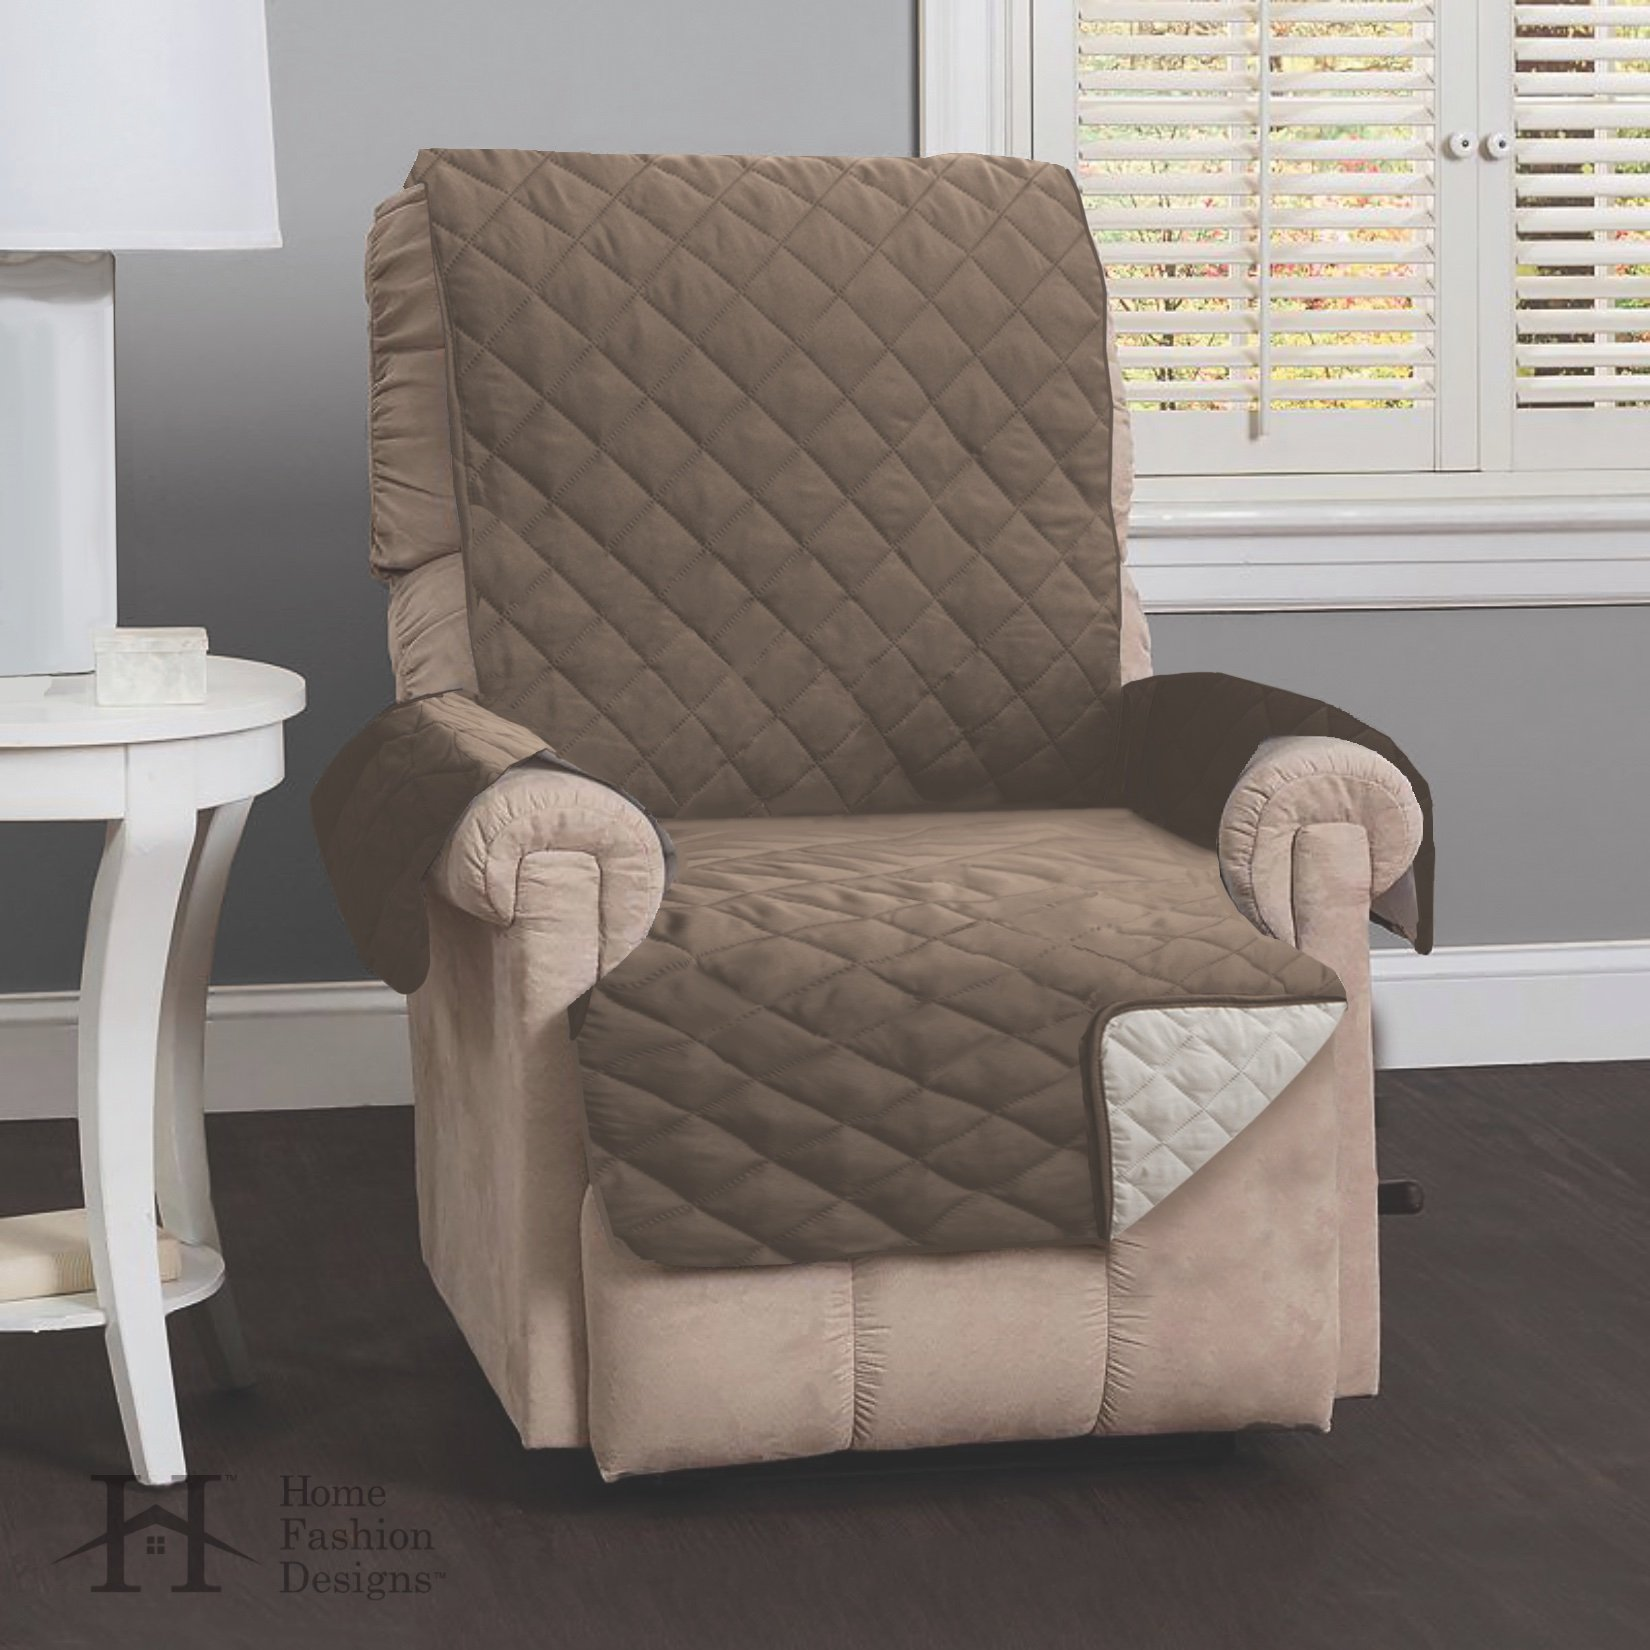 Home Fashion Designs Deluxe Reversible Quilted Furniture Protector and PET PROTECTOR. Two Fresh Looks in One. Perfect for Families with Pets and Kids. By Brand. (Recliner - Prairie/Flax) by Home Fashion Designs